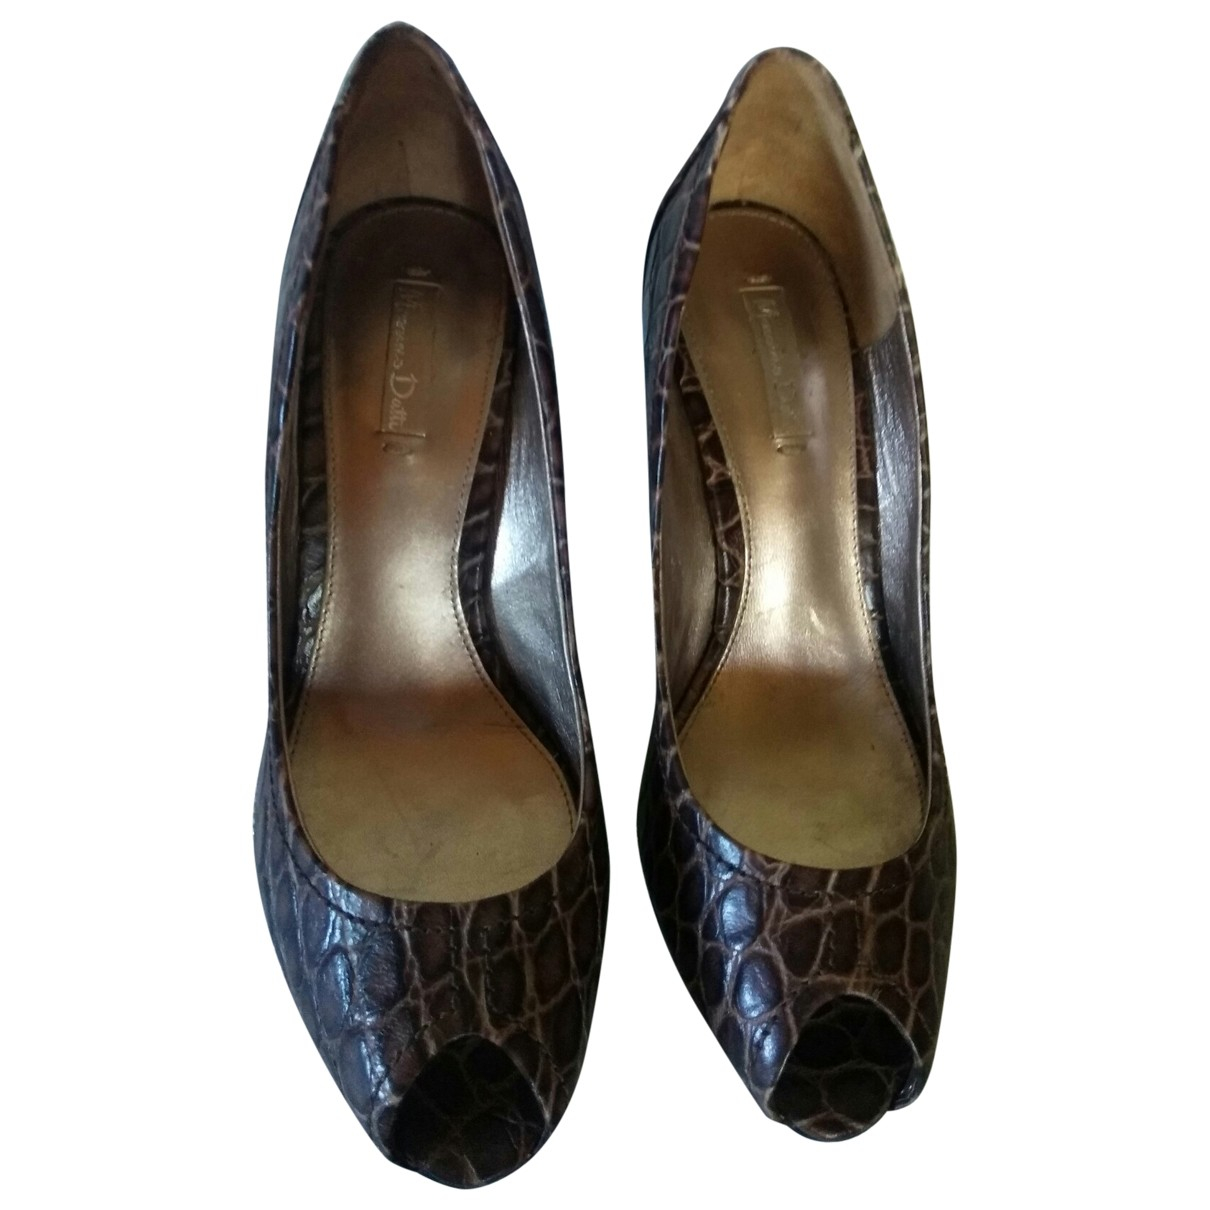 Massimo Dutti \N Brown Leather Heels for Women 37 EU